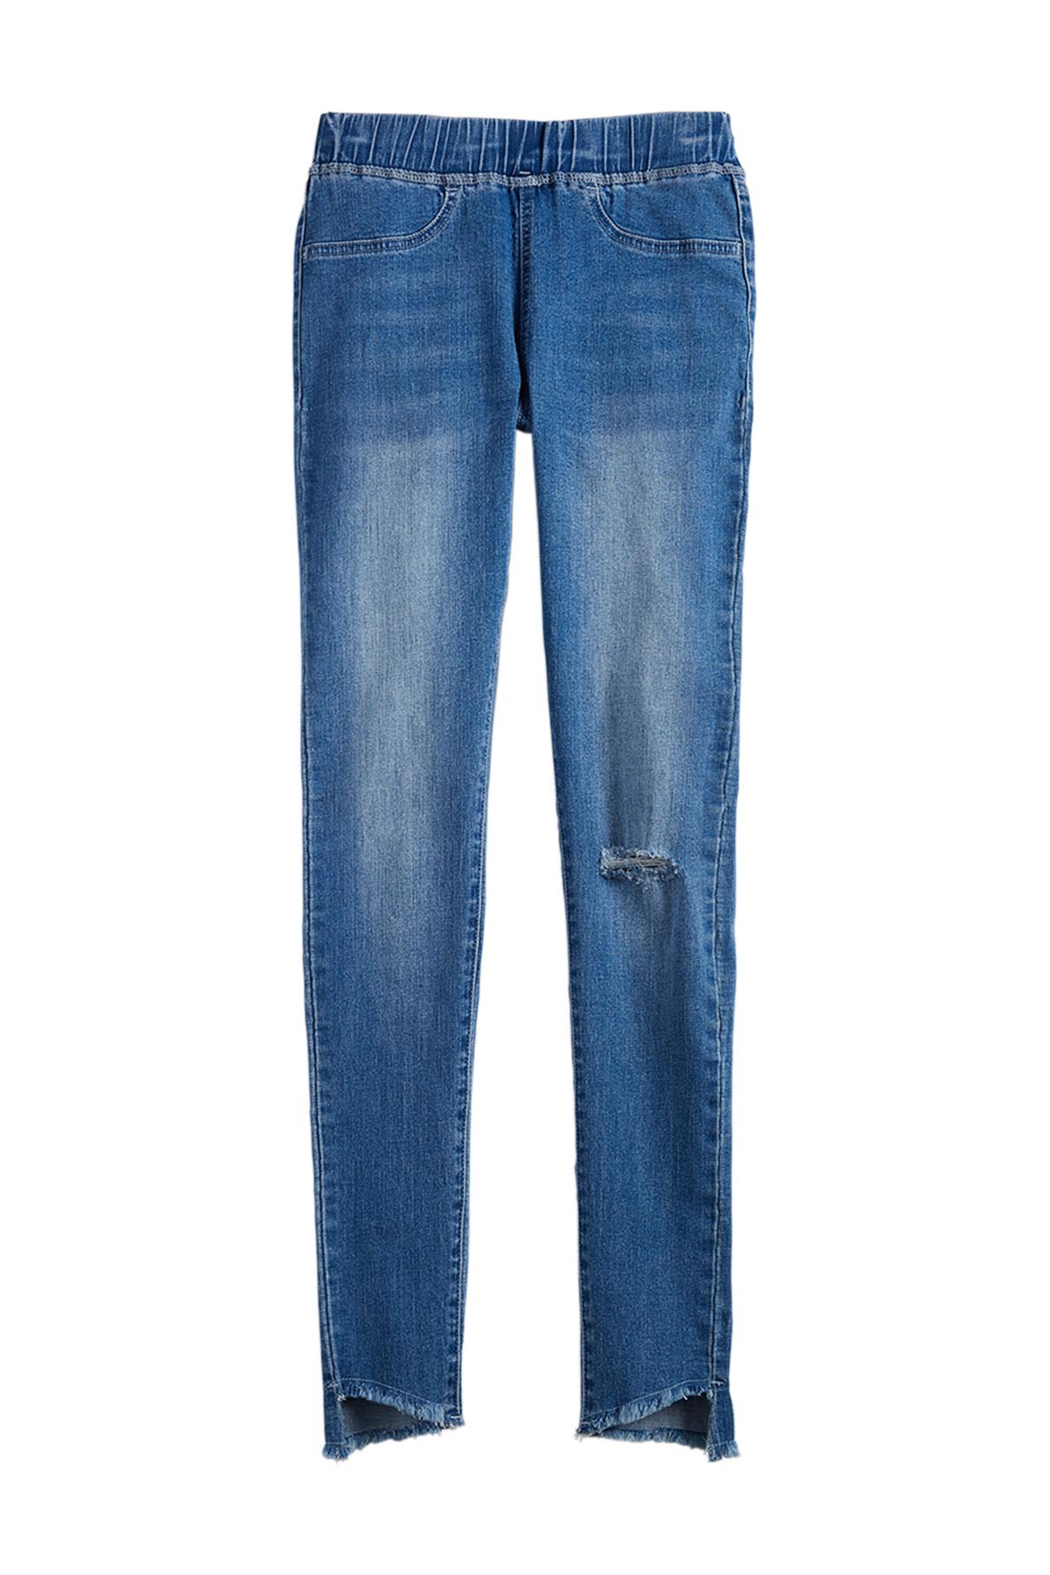 Mud Pie  Dax Distressed Jean - Front Full Image